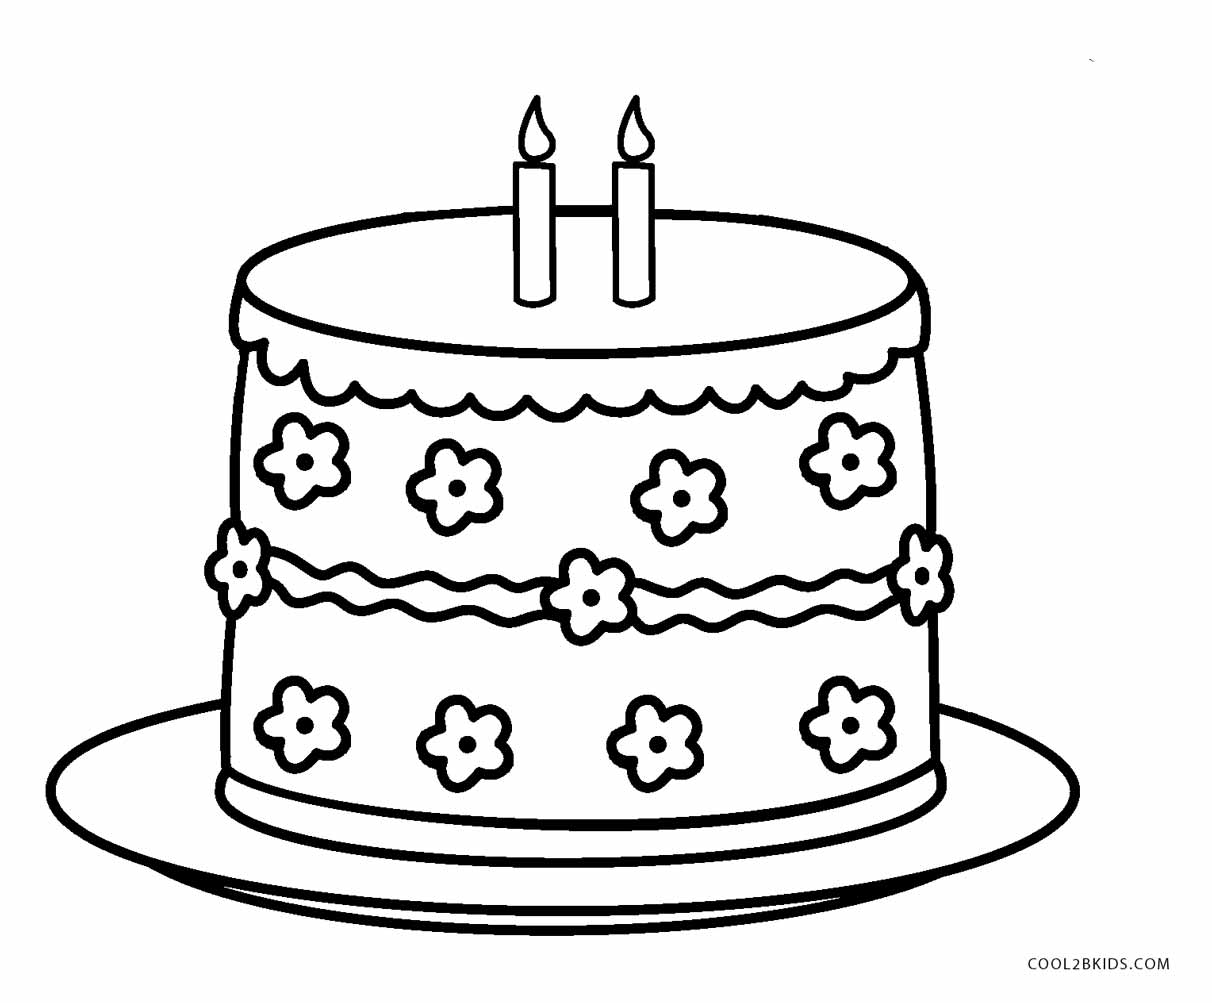 simple cake coloring pages free digi images for cards google search dibujos de simple pages cake coloring